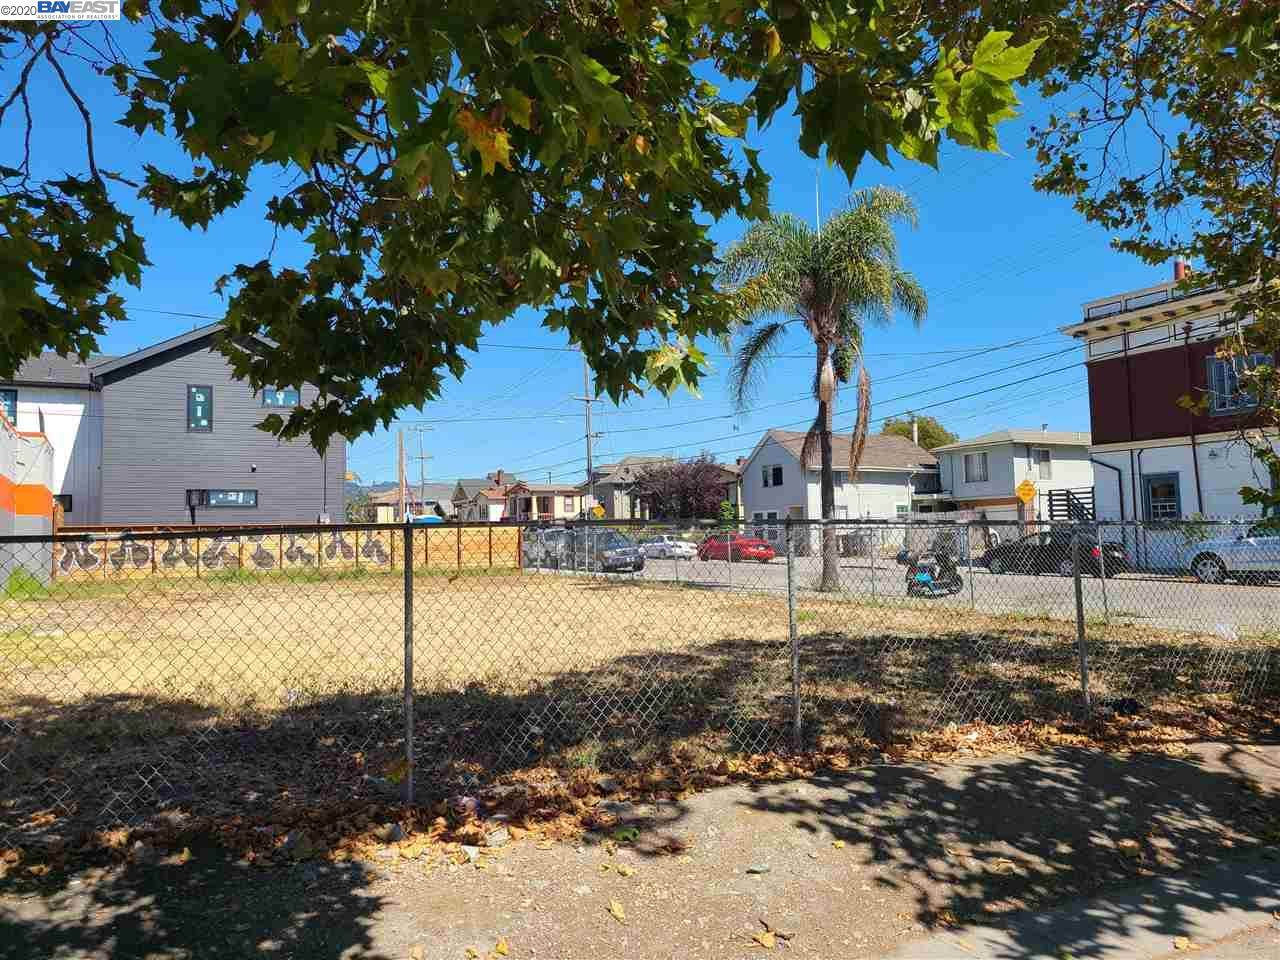 6500 San Pablo Ave - Photo 1